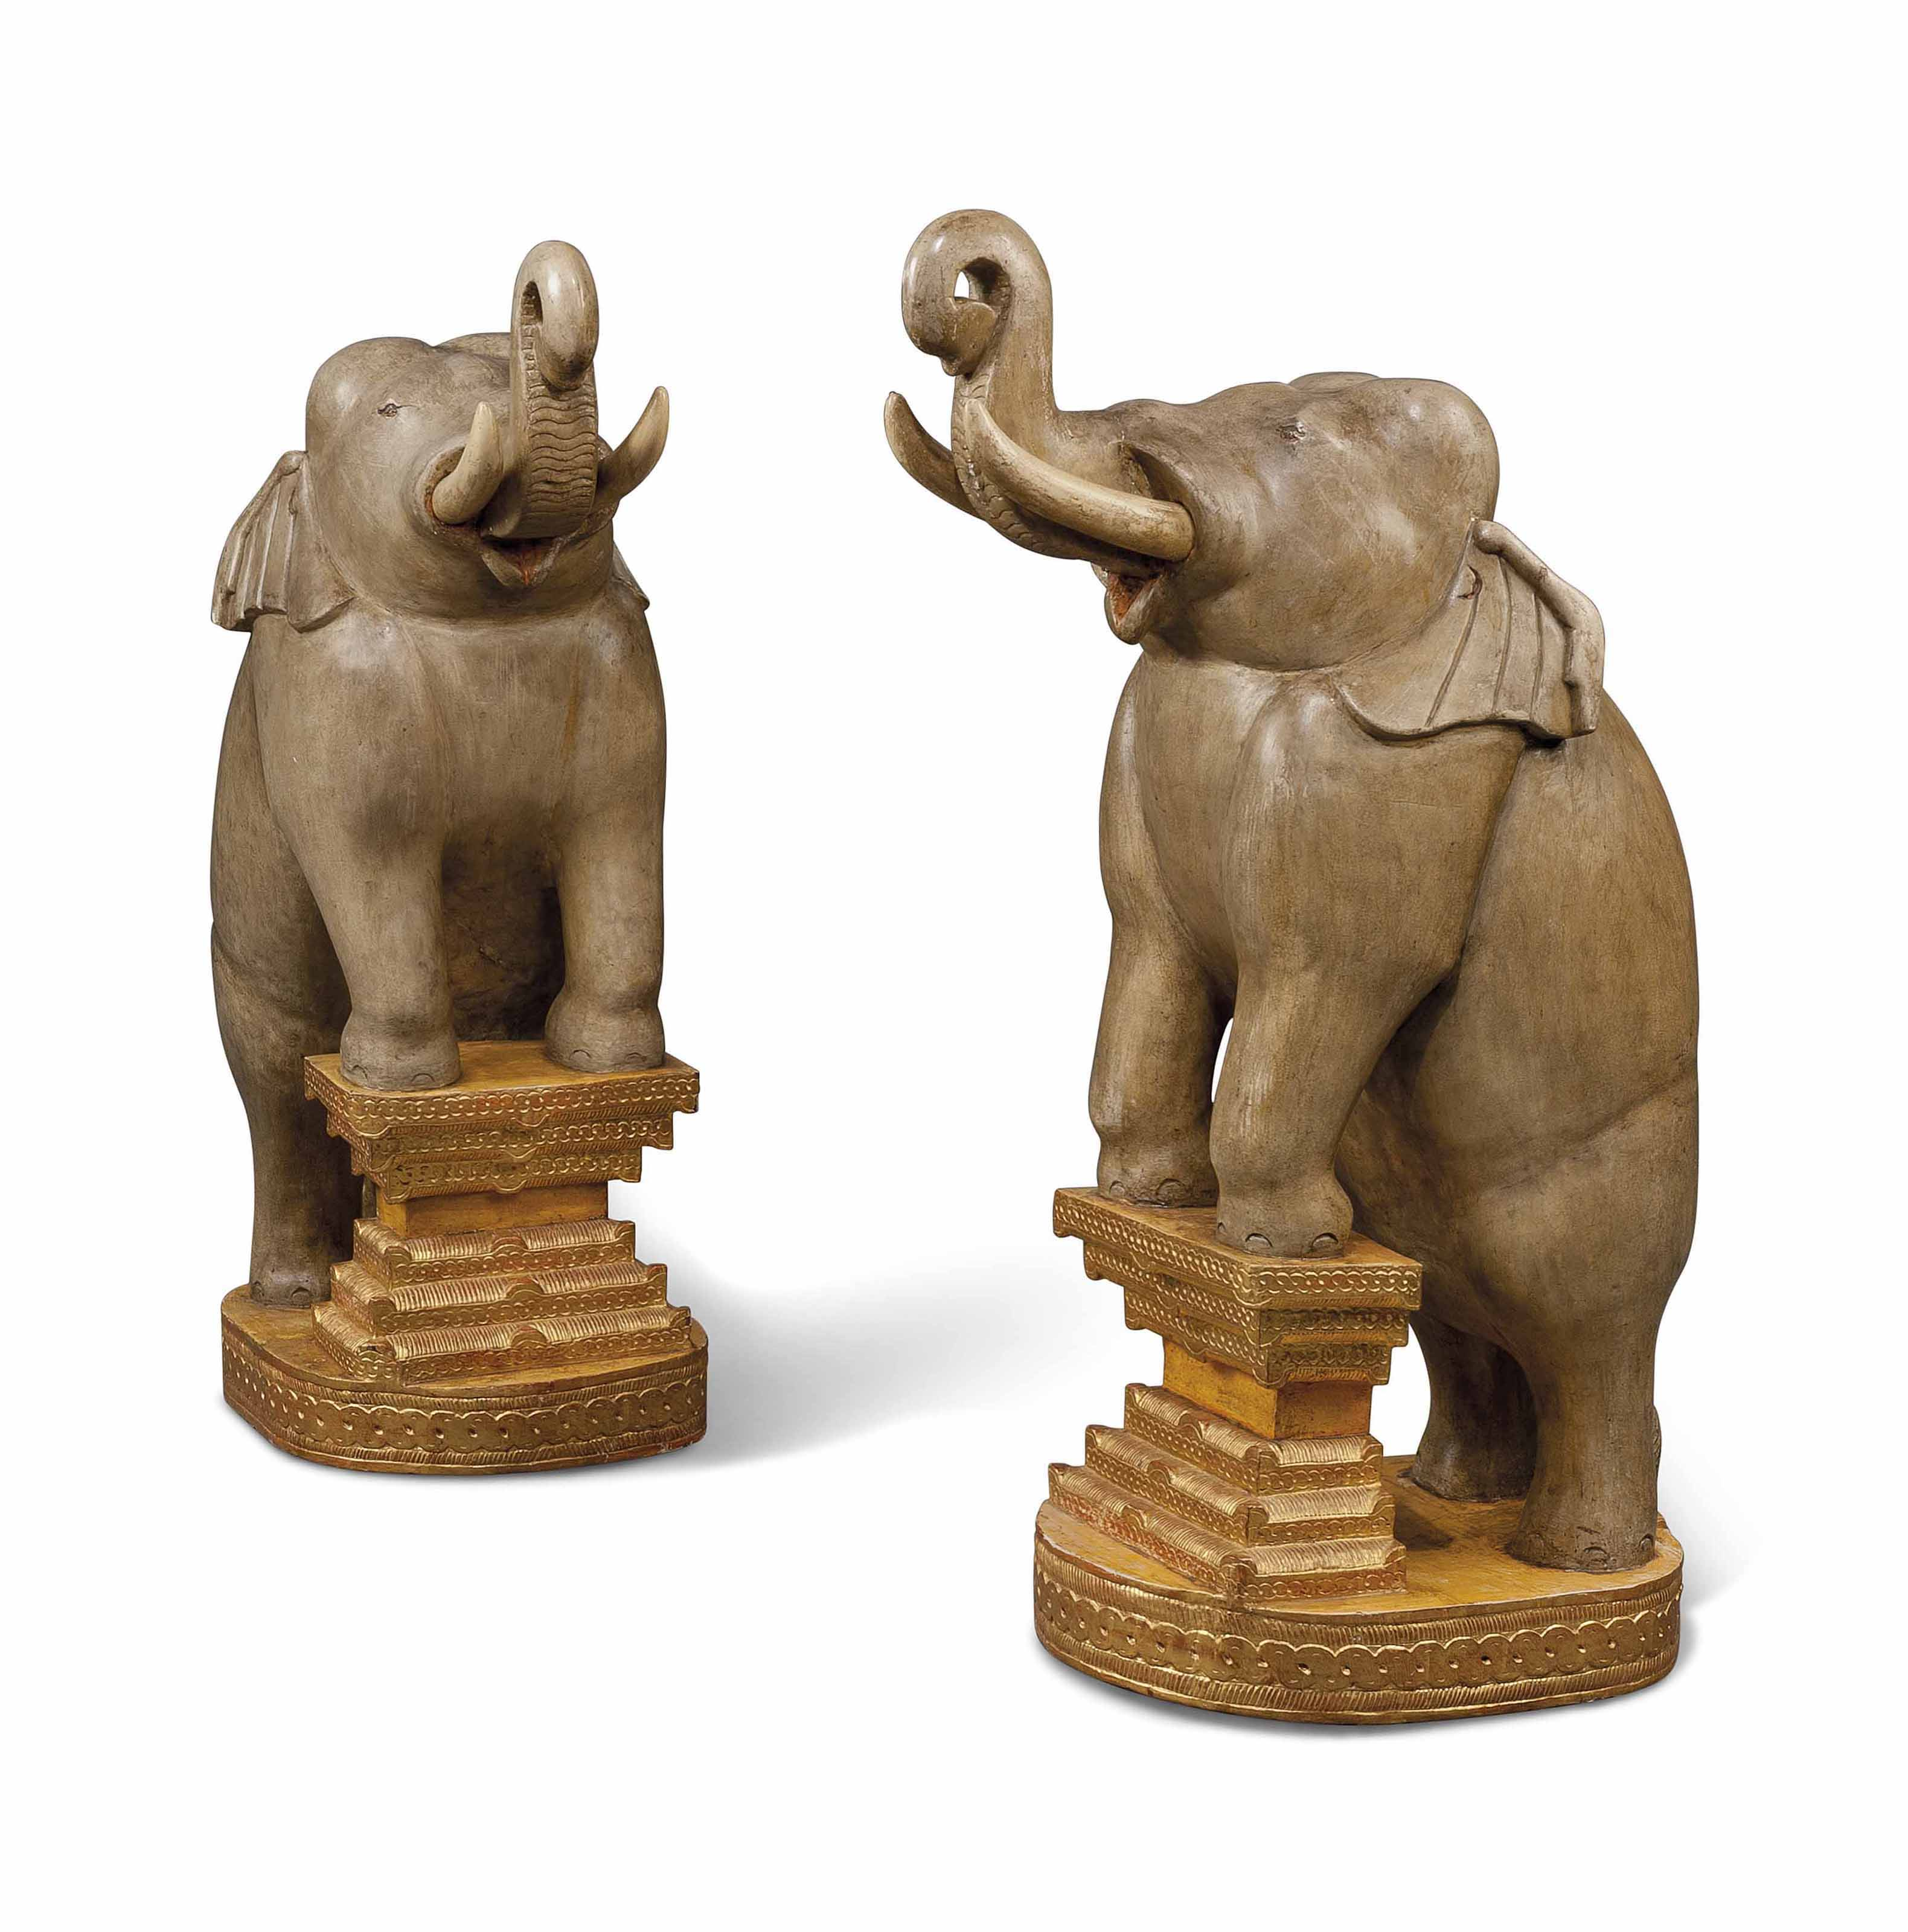 A PAIR OF PAINTED AND PARCEL-GILT HARDWOOD LARGE ELEPHANT FIGURES